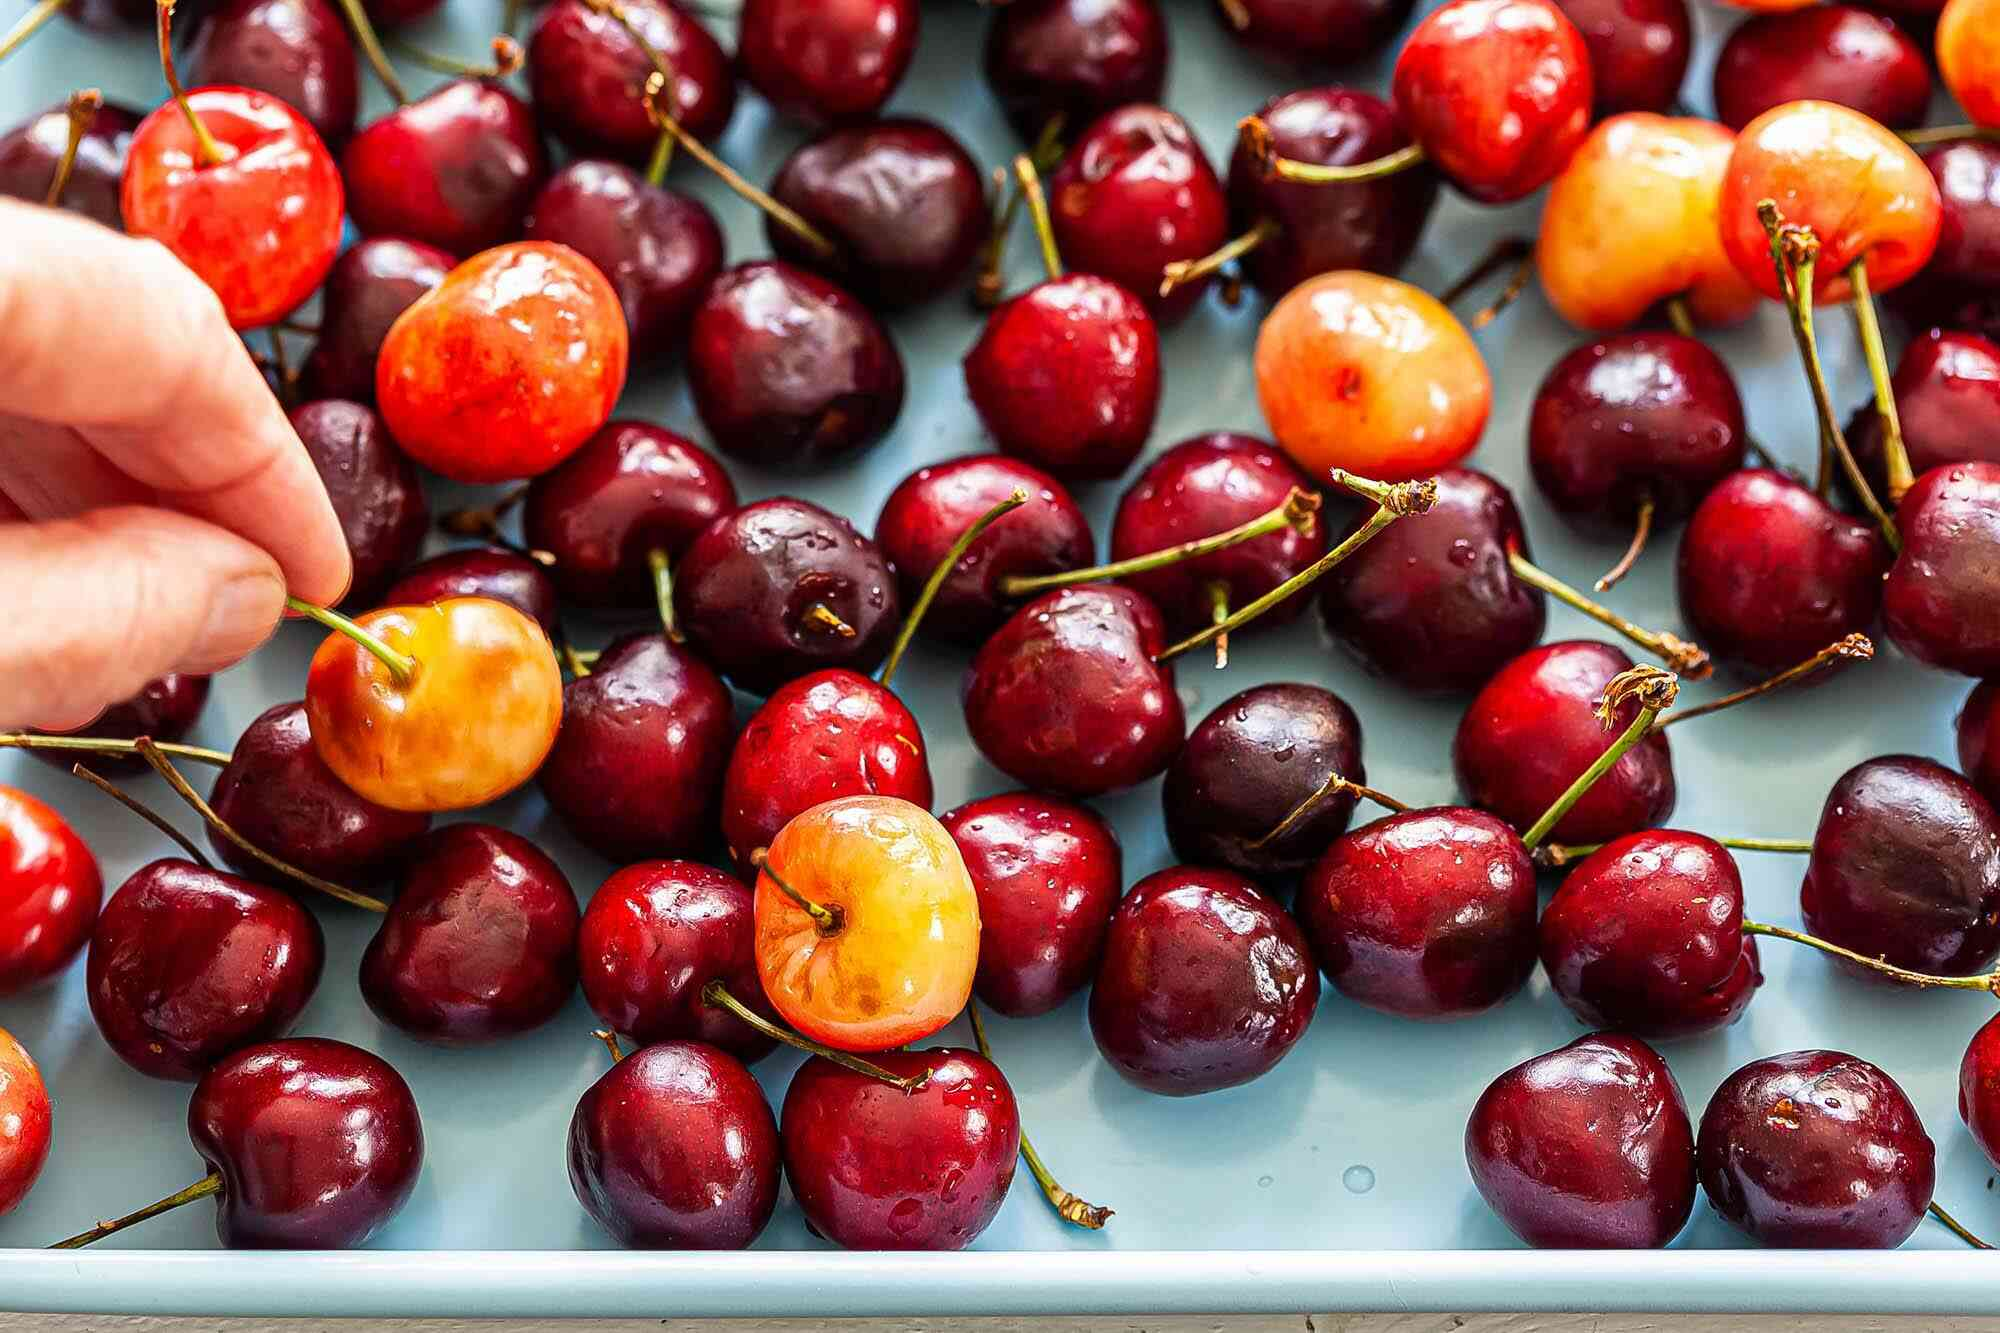 How to choose cherries with a variety of cherries on a tray and a hand picking one up.